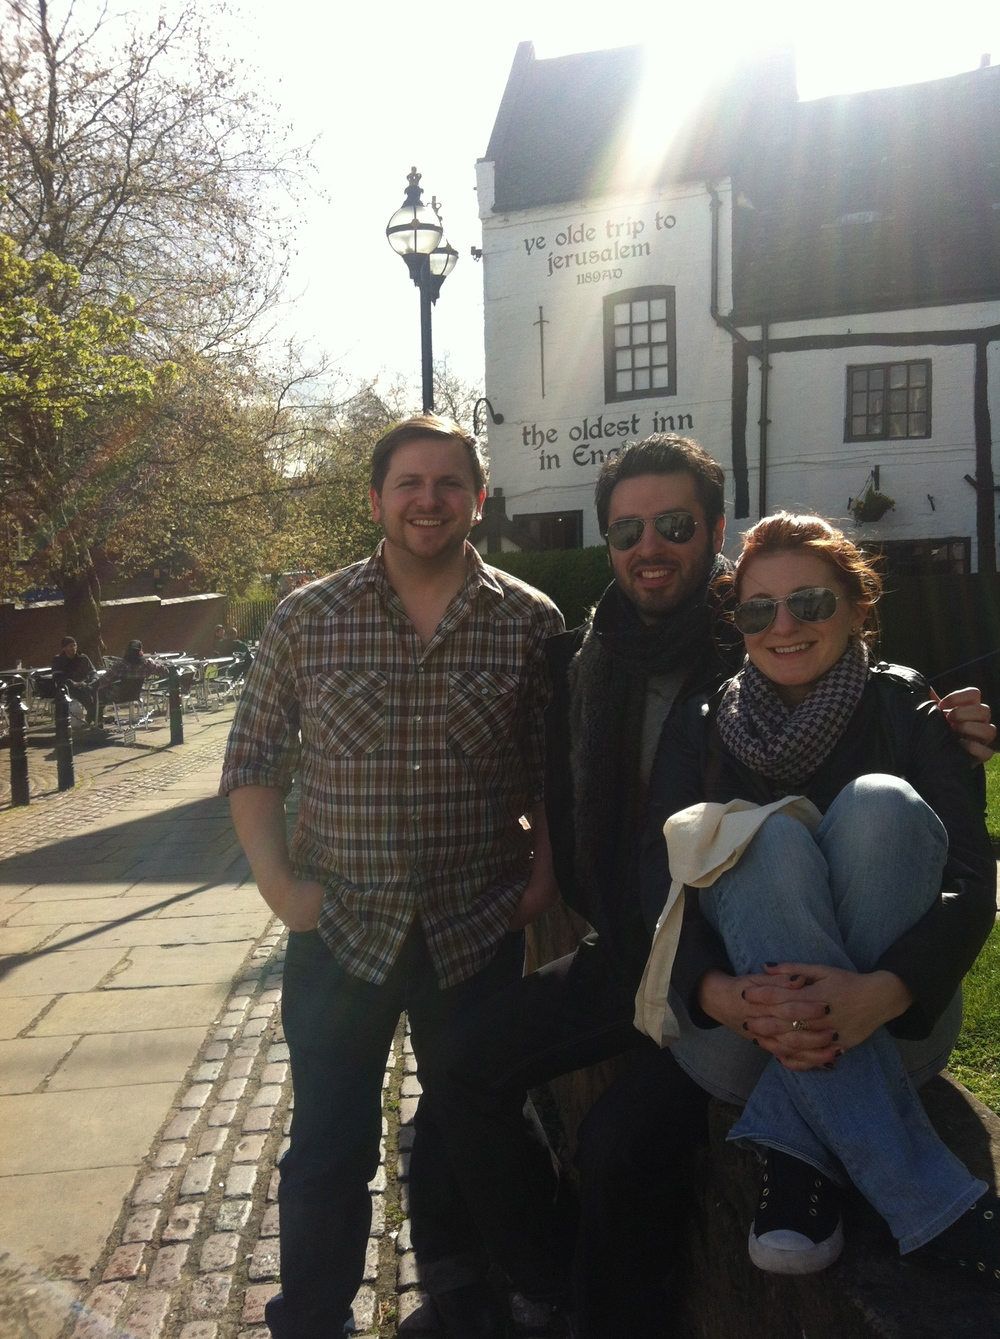 With Ari Hest and Chrissi Poland, Nottingham, UK